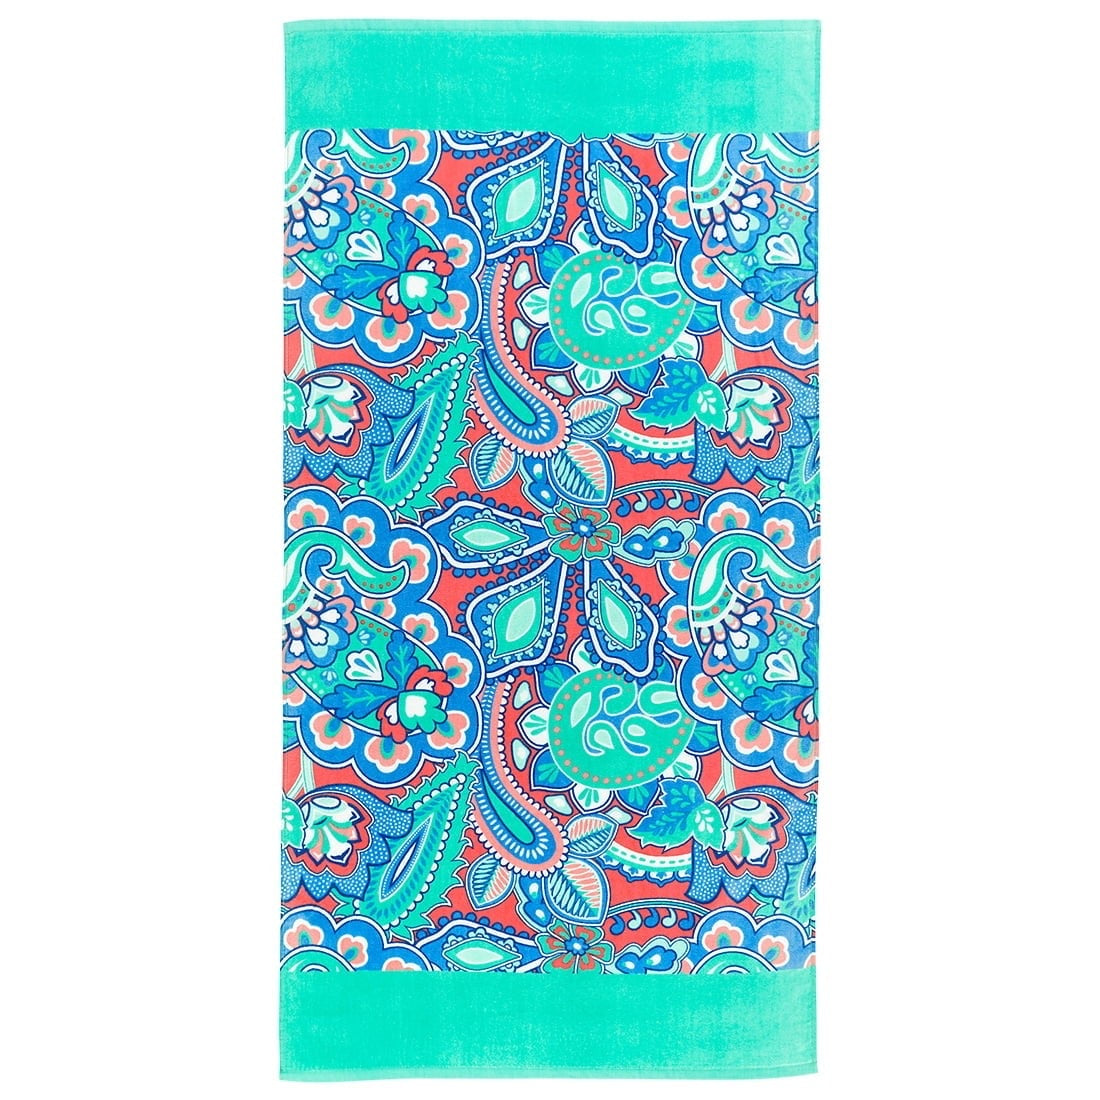 Island Bliss Towel